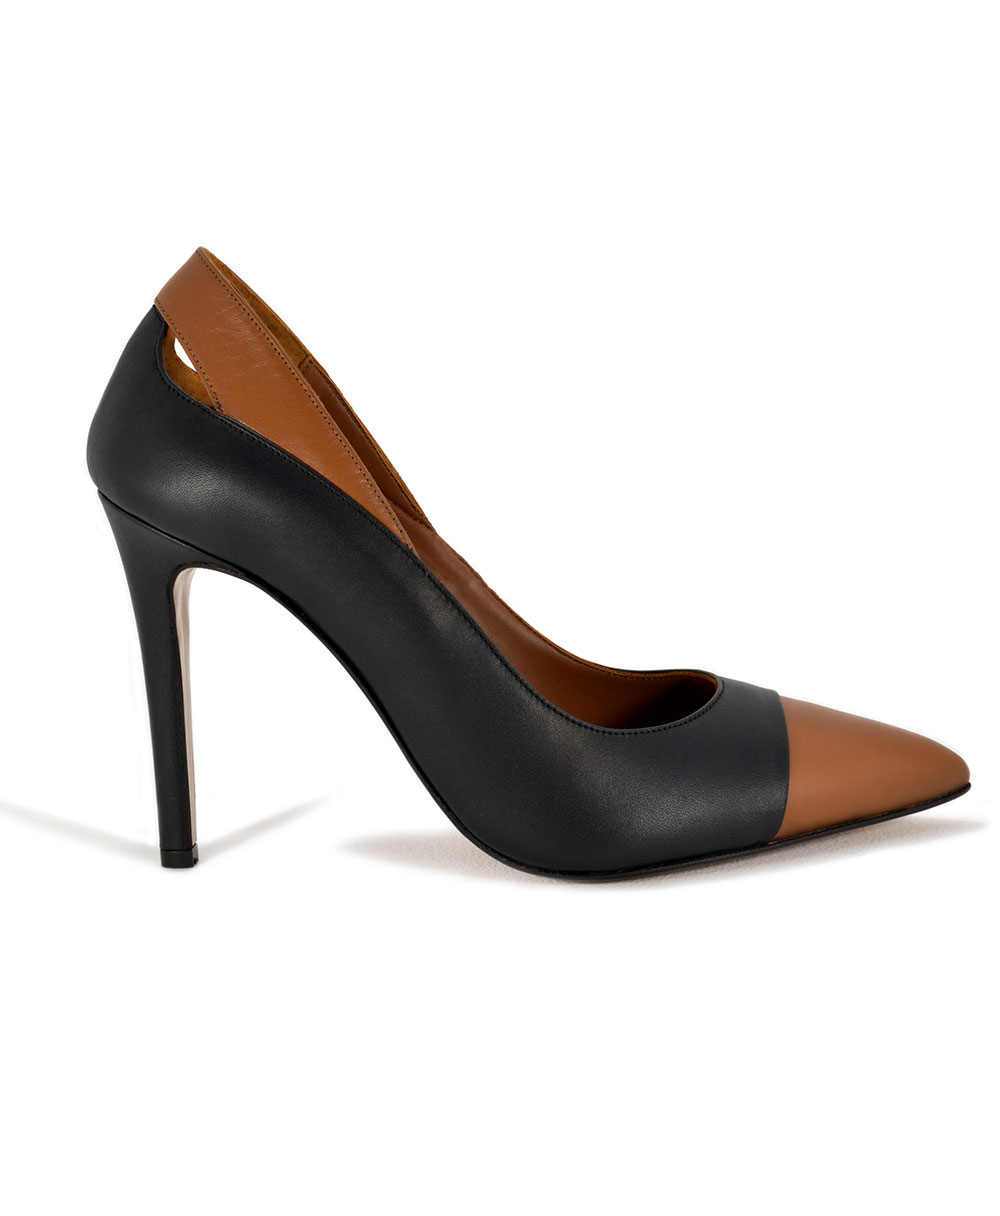 Black And Τaba Leather Pointed Pumps Mod.2563